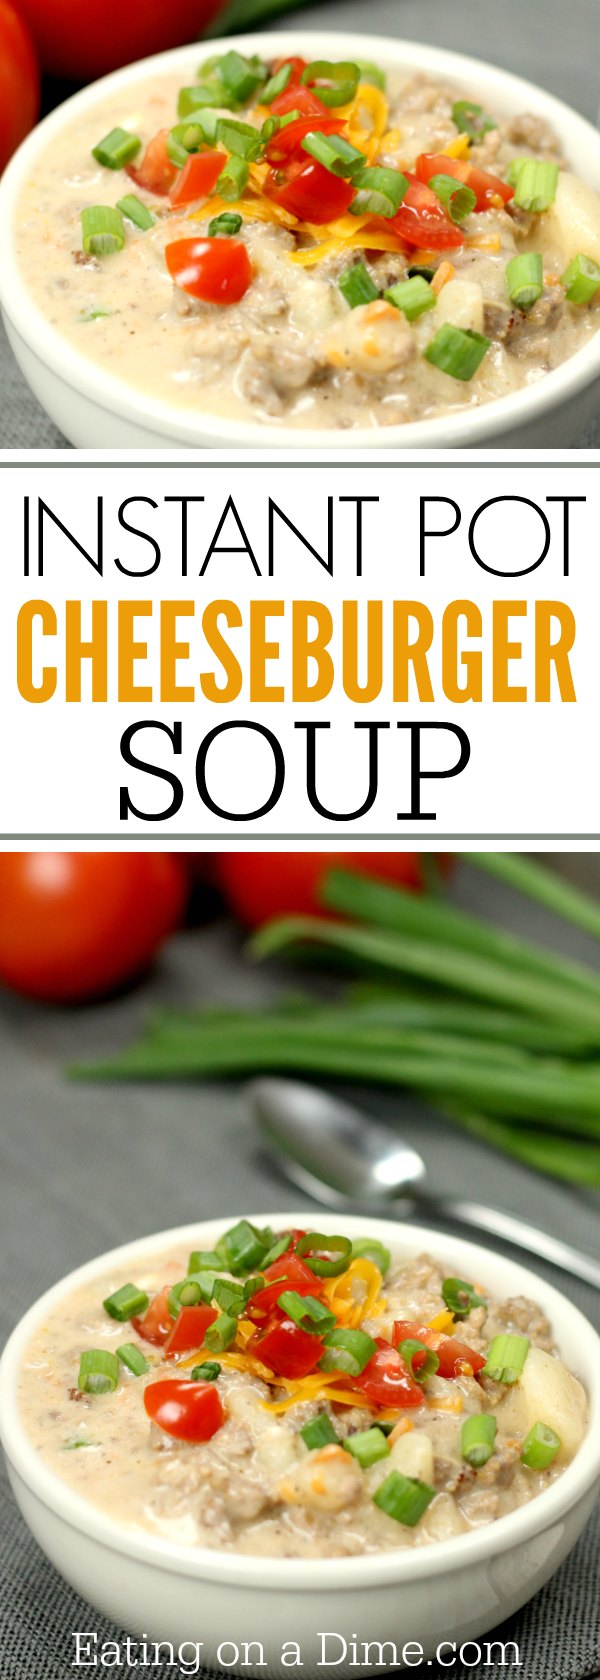 Learn how to make the Best Cheeseburger Soup Recipe.This Instant Pot Cheeseburger Soup Recipe is so easy. Pressure Cooker Hamburger Soup Recipe is the best.